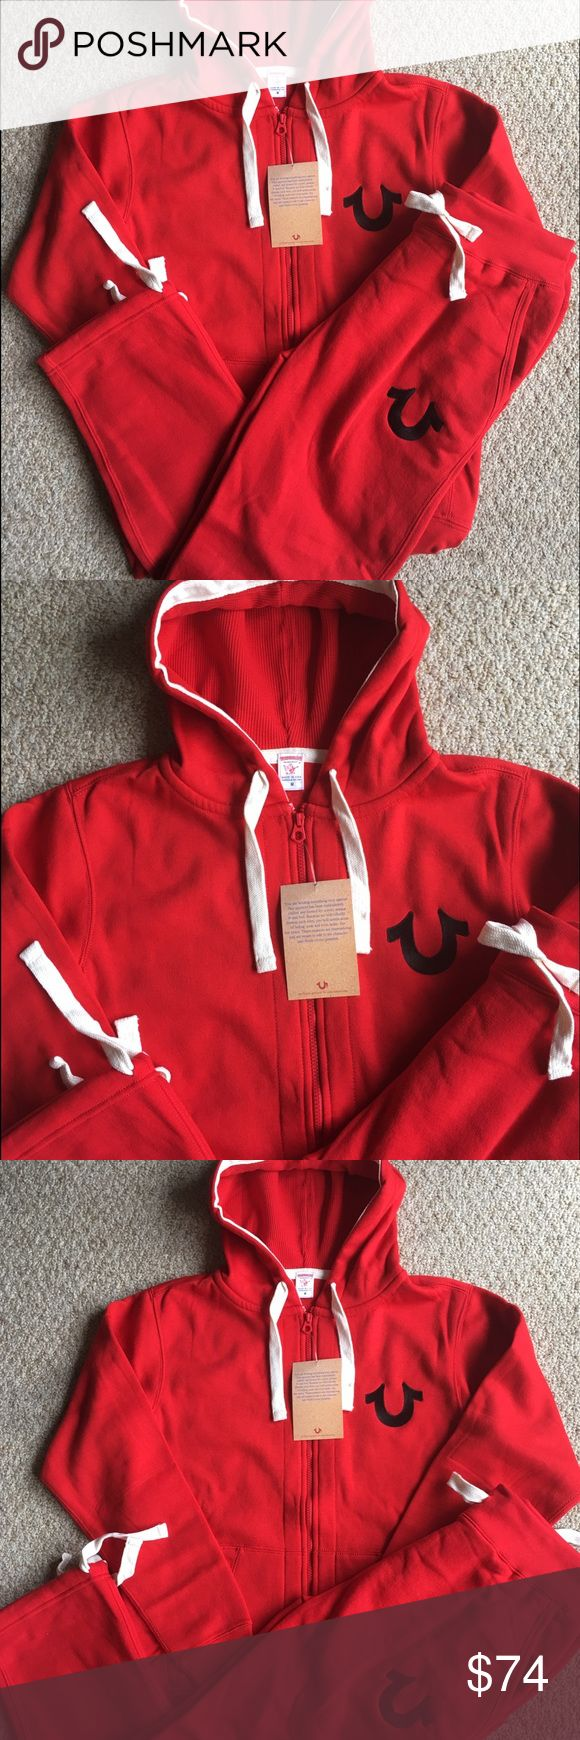 New Men's True Religion Hoodie Sweatpants Set Brand new with tags. Red with Black stitch. Drawstring Sweatpants with Zipped Hoodie. Great deal! True Religion Shirts Sweatshirts & Hoodies